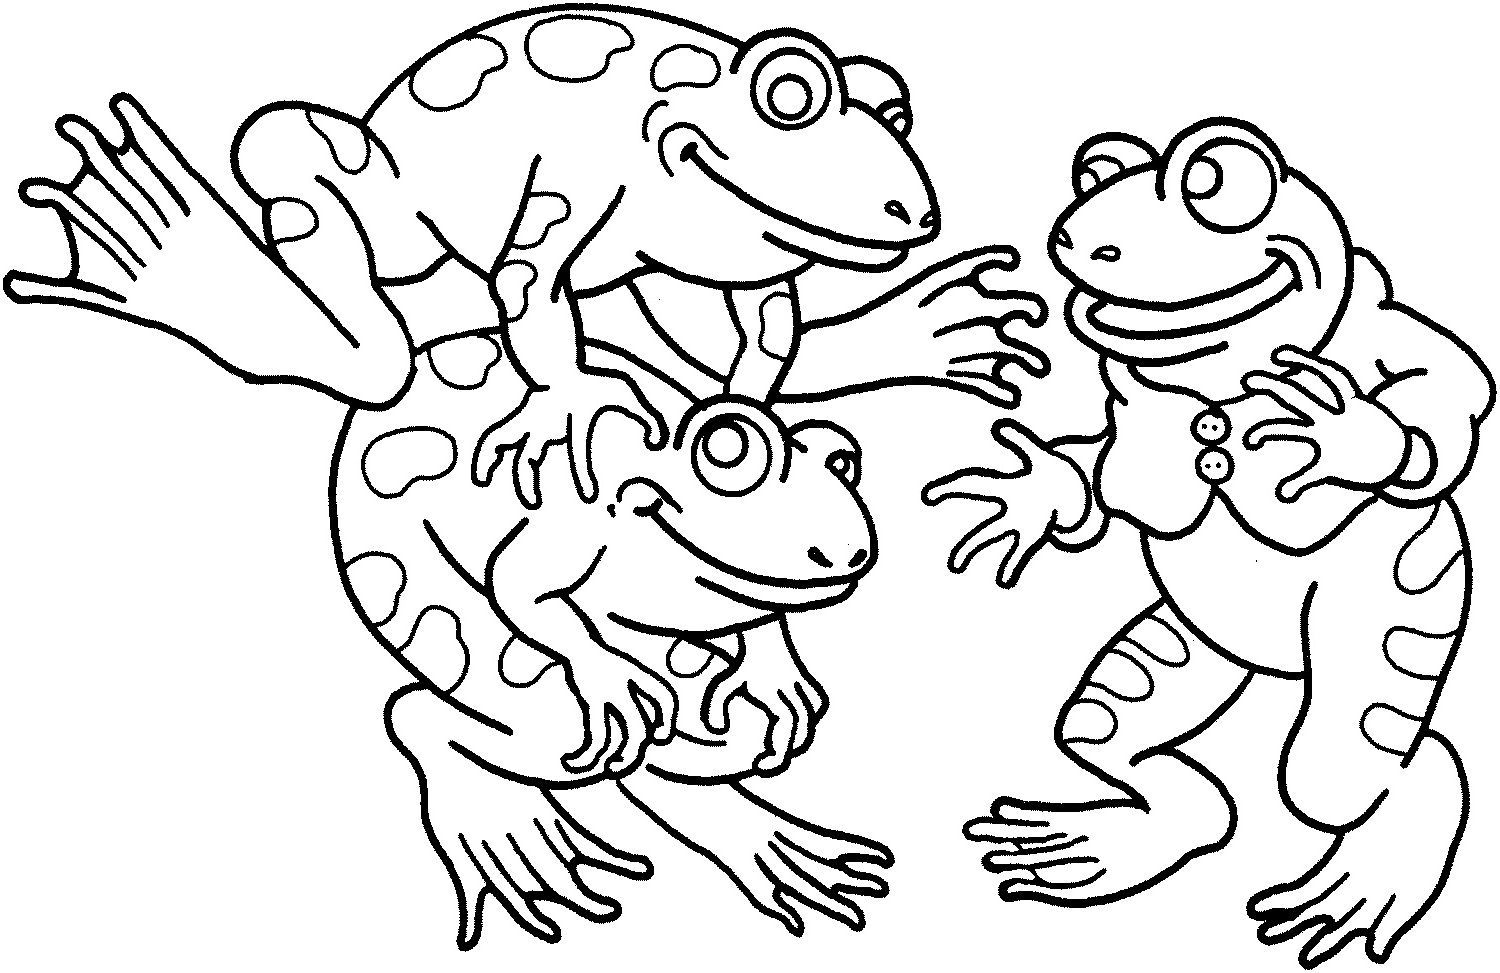 Frog Coloring Pages For 2019 Frog Coloring Pages Coloring Pages